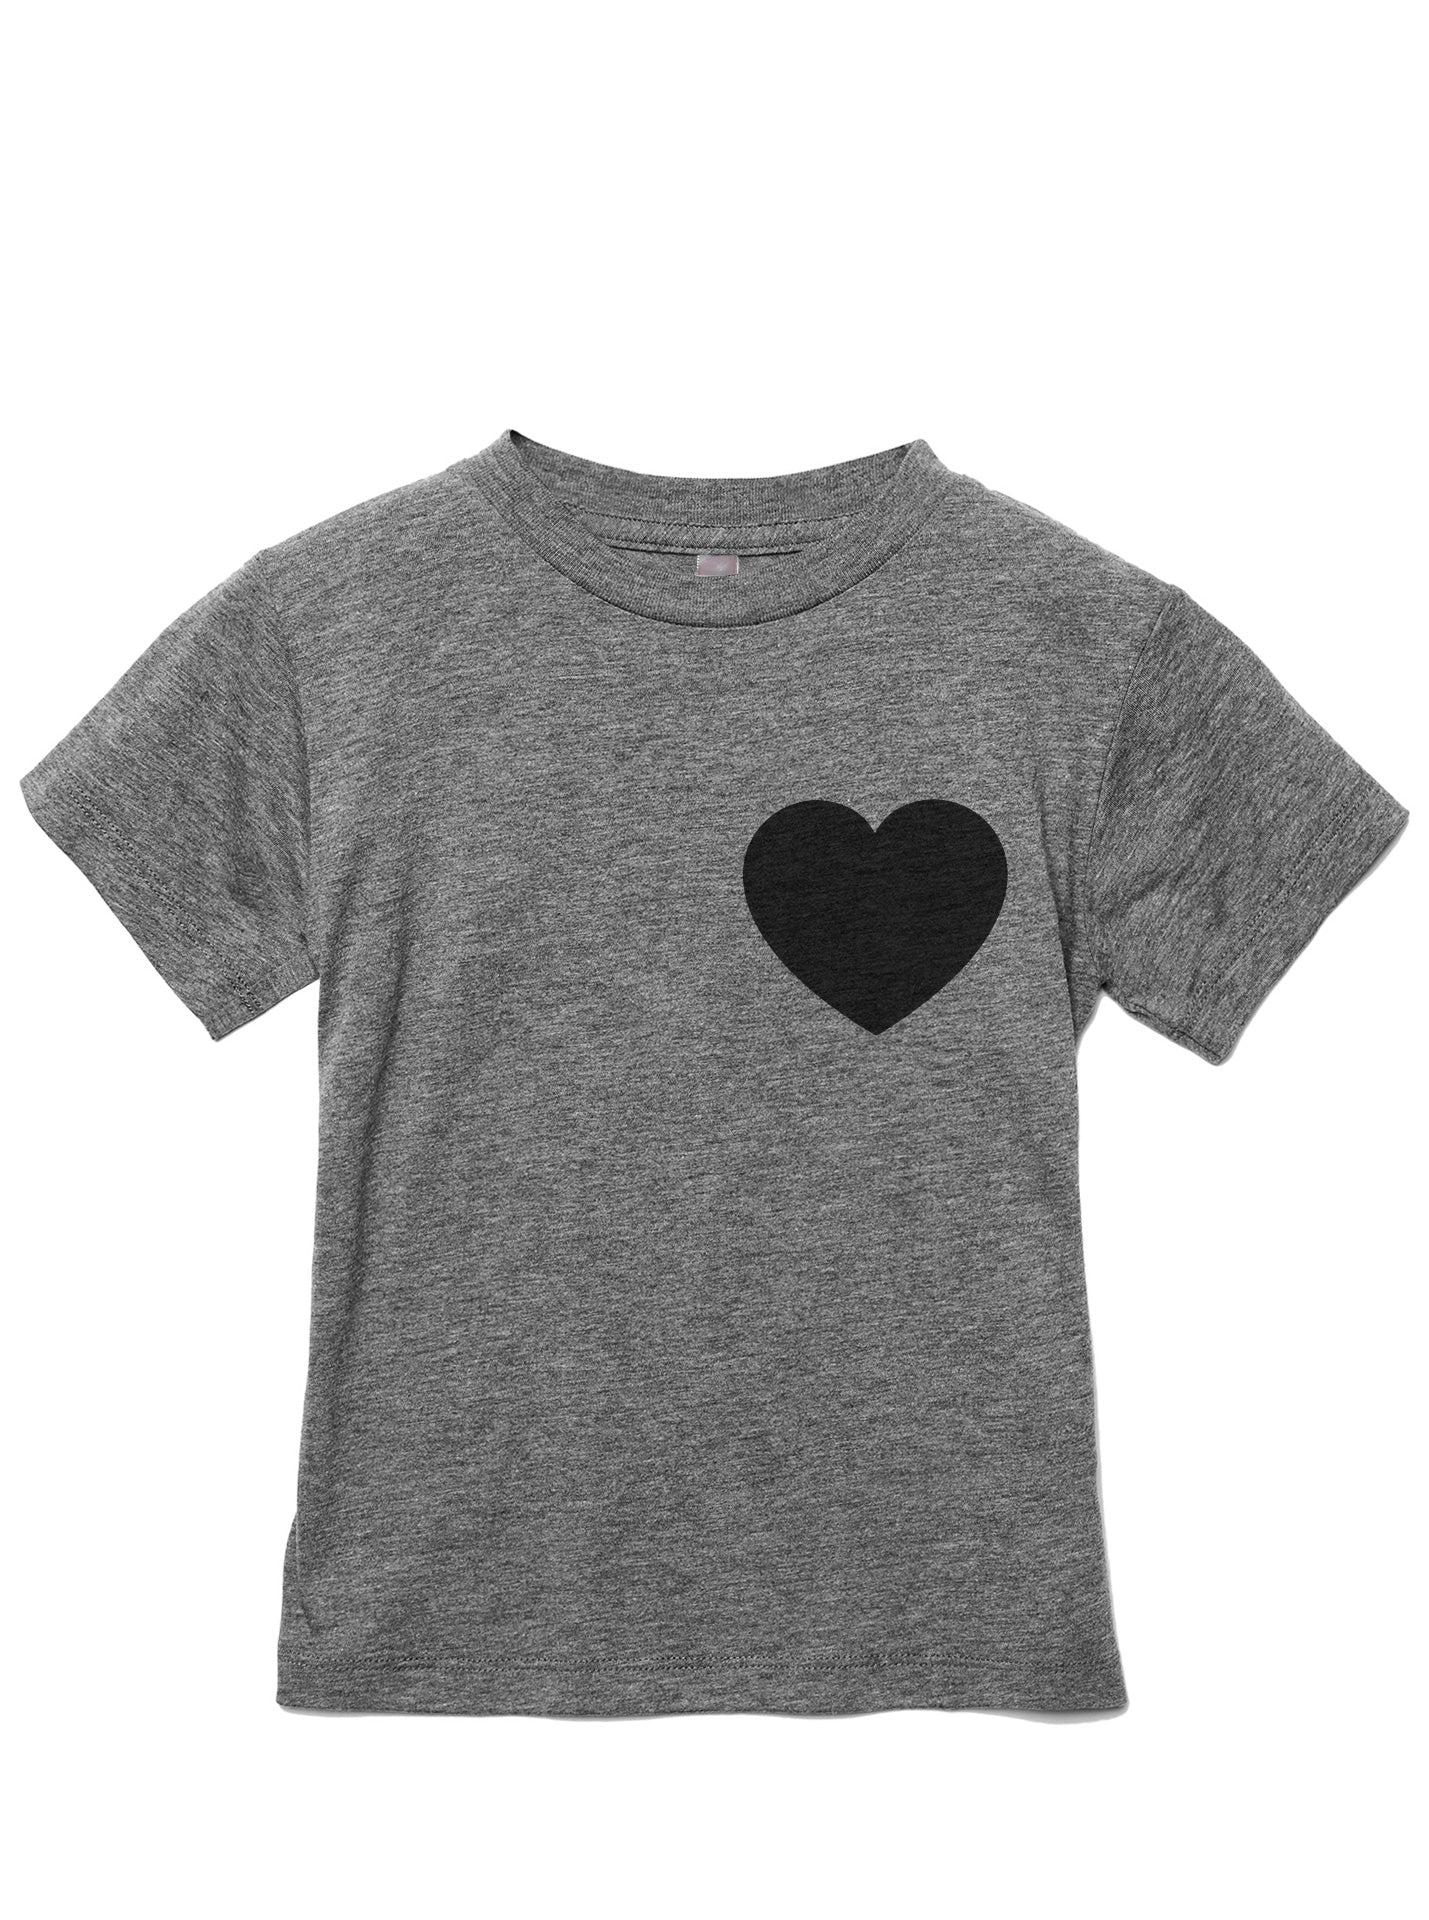 Small Heart Toddler's Go-To Crewneck Tee Heather Grey